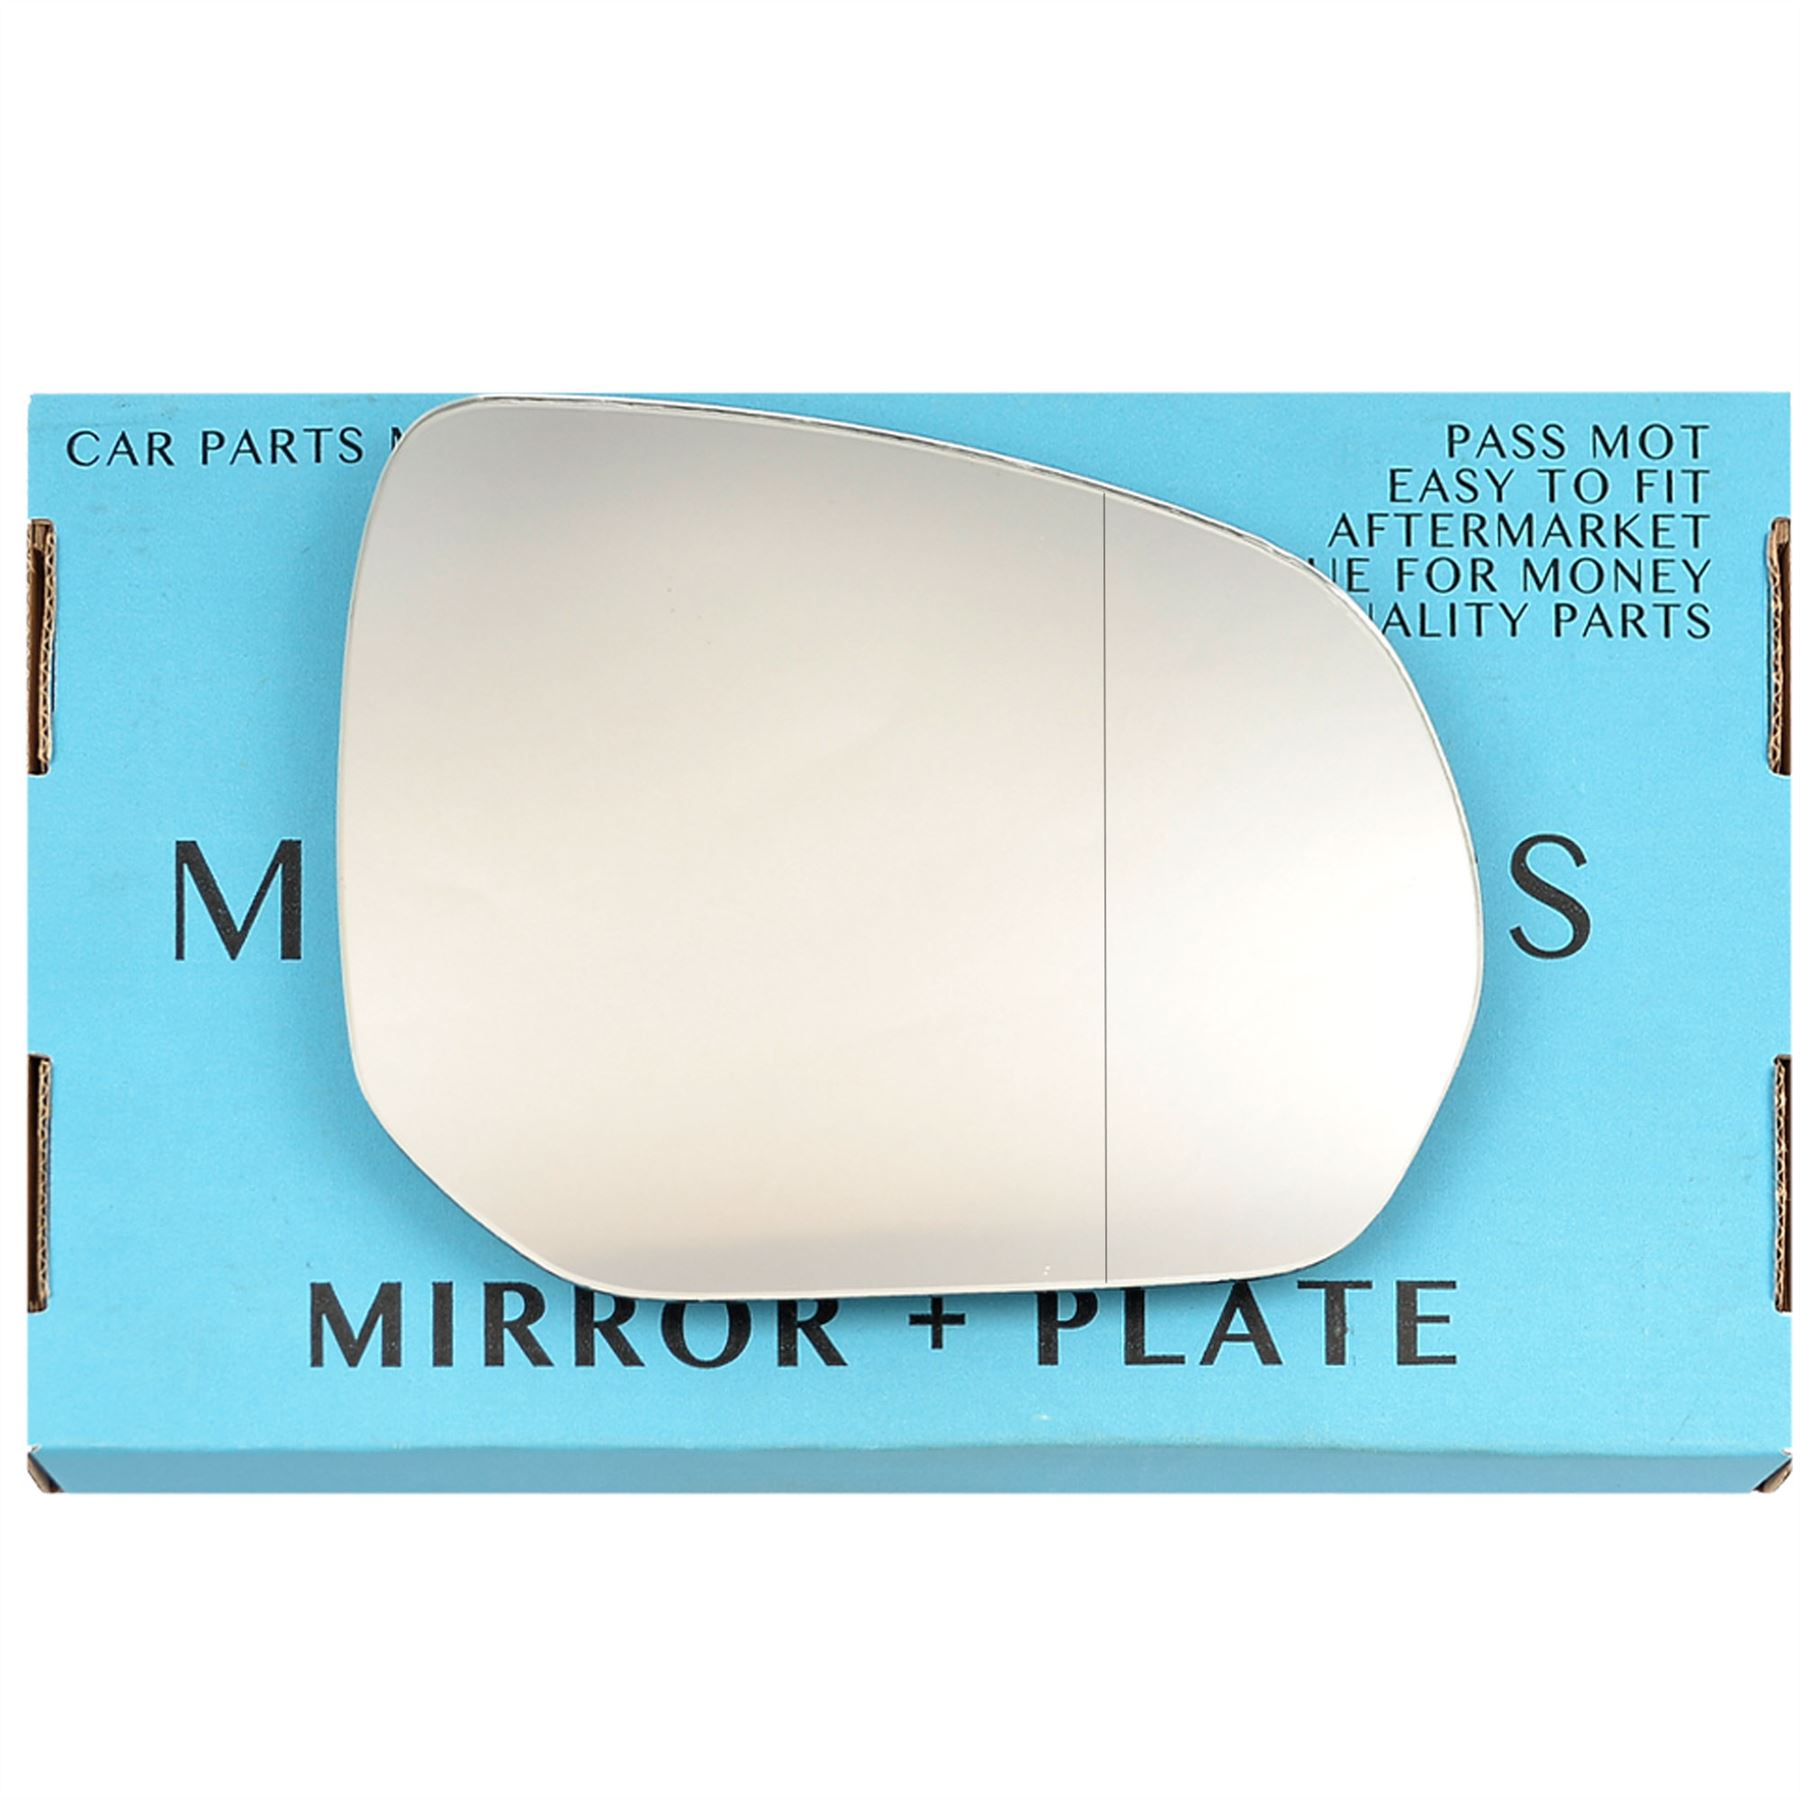 Right Driver Side Wide Angle Wing Door Mirror Glass for citroen c3 picasso 09-16